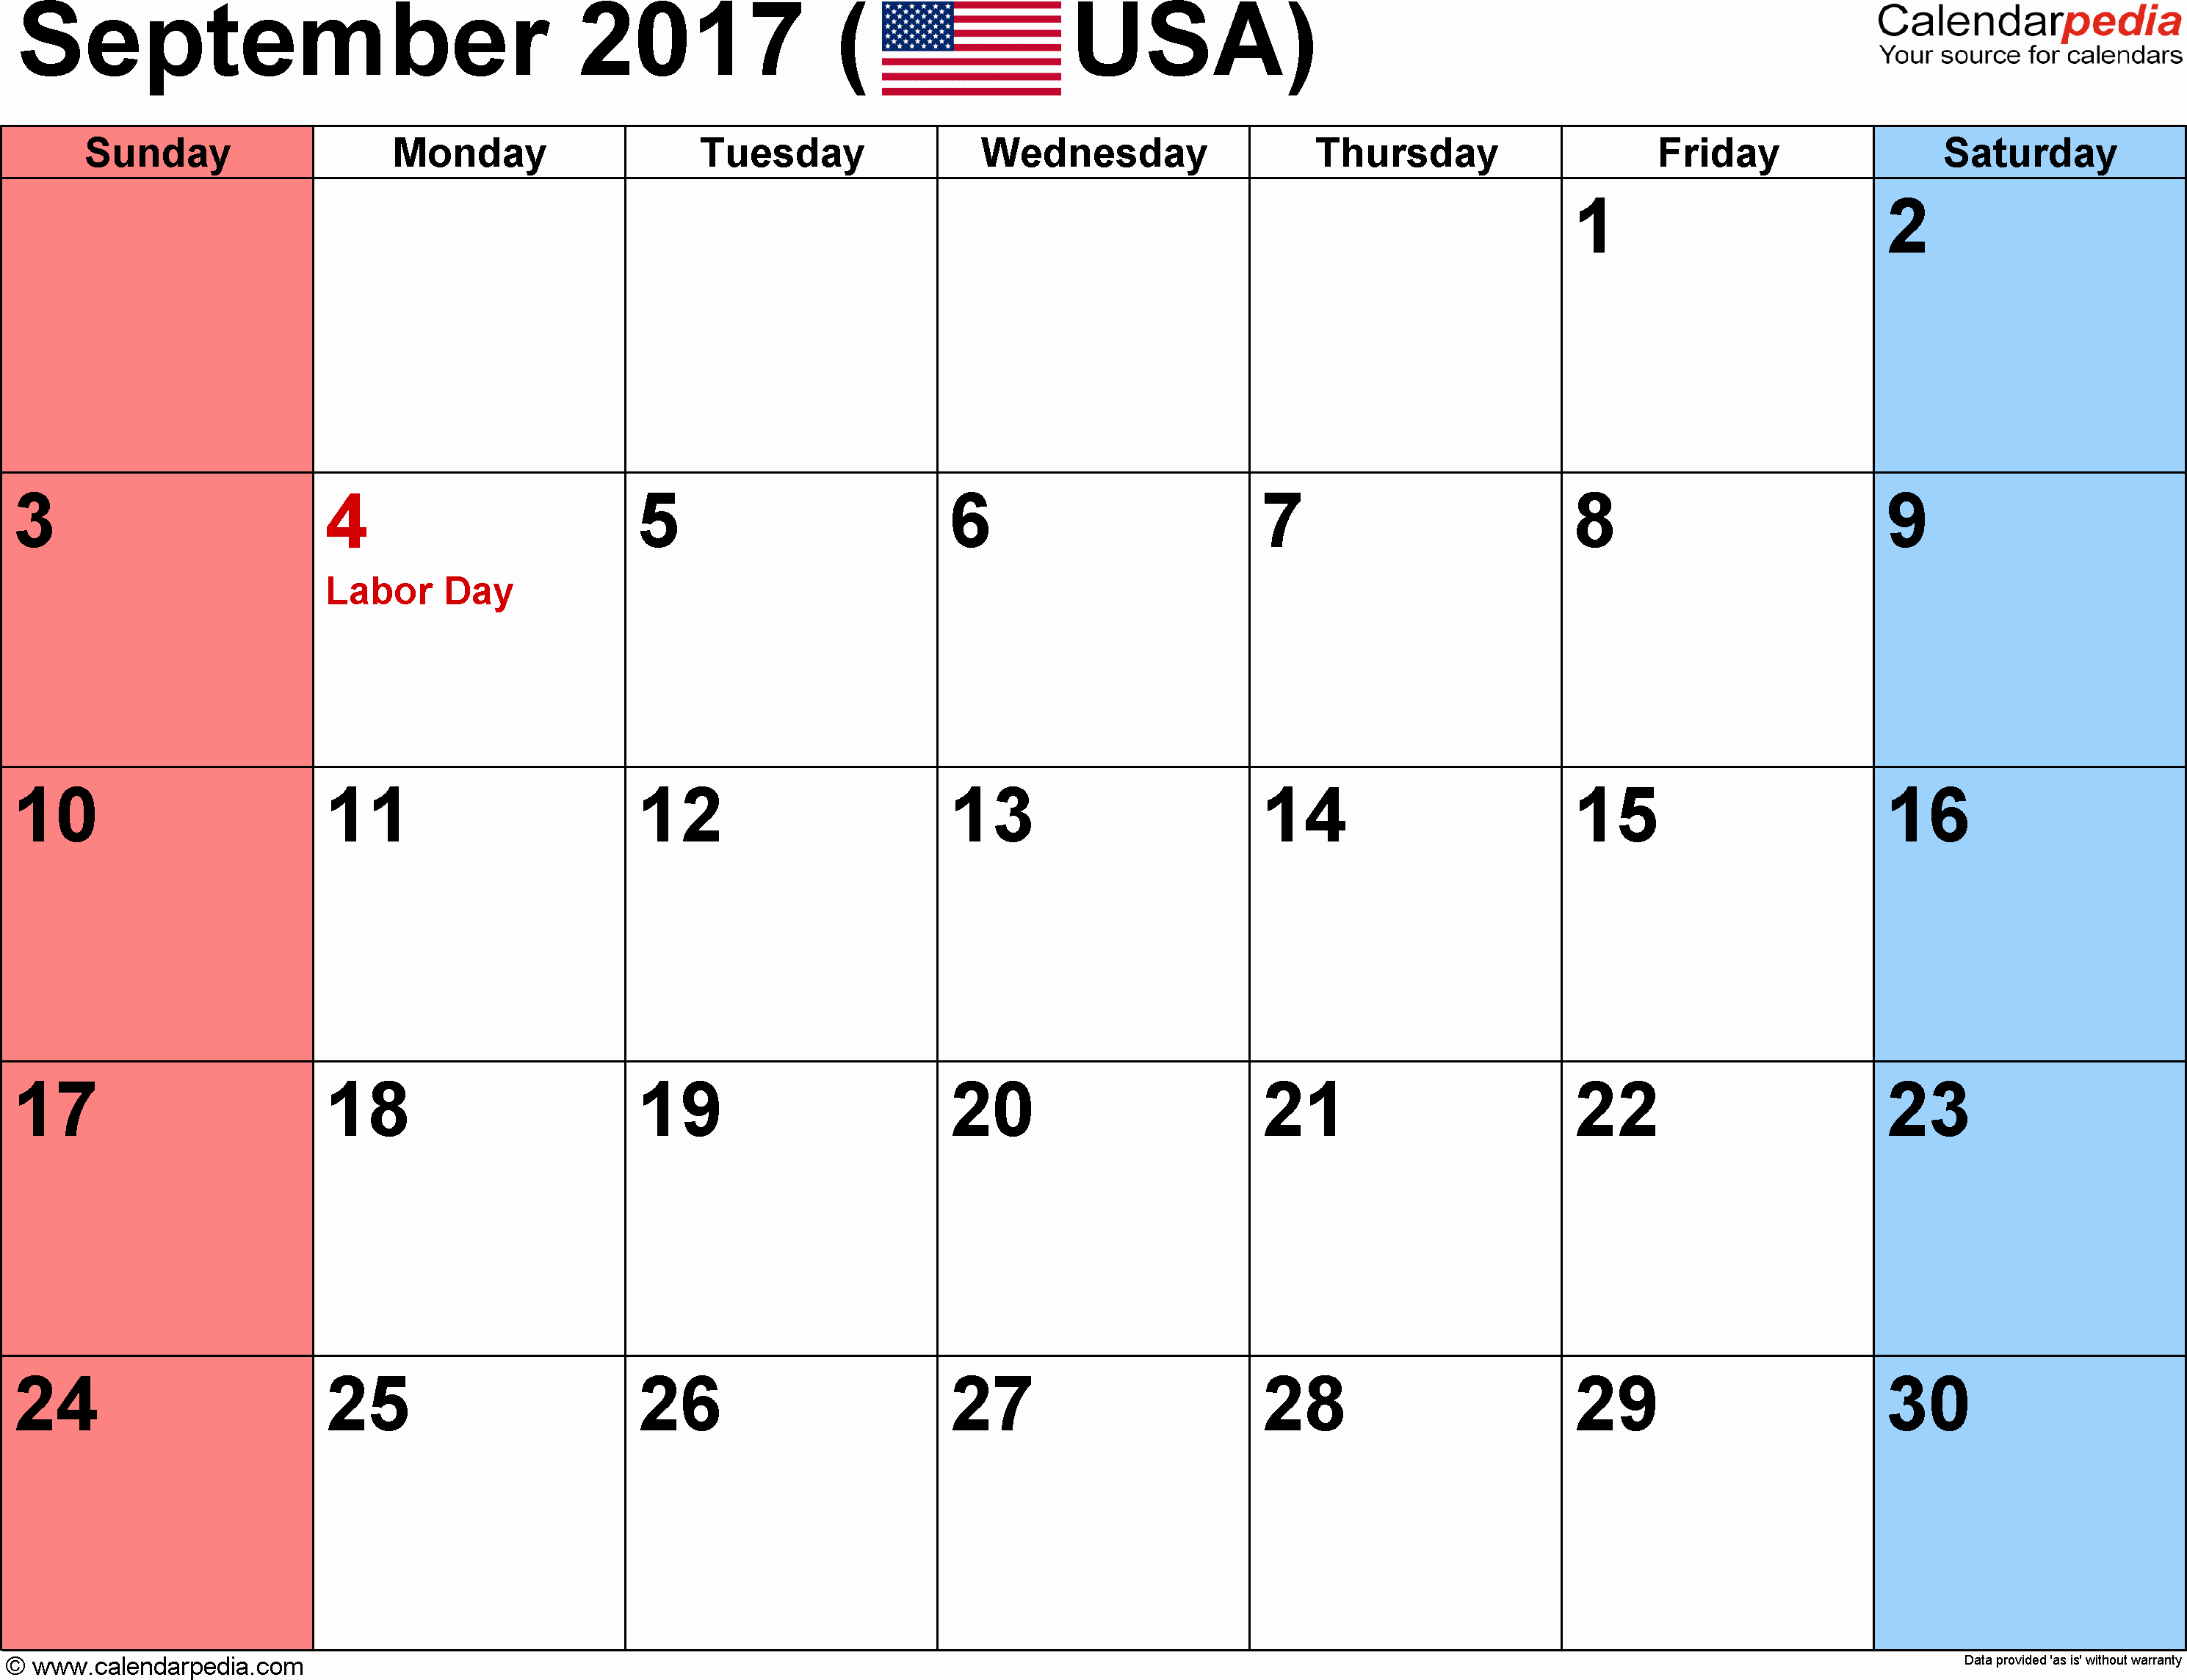 September 2017 Printable Calendar Word Best Of September 2017 Calendars for Word Excel & Pdf